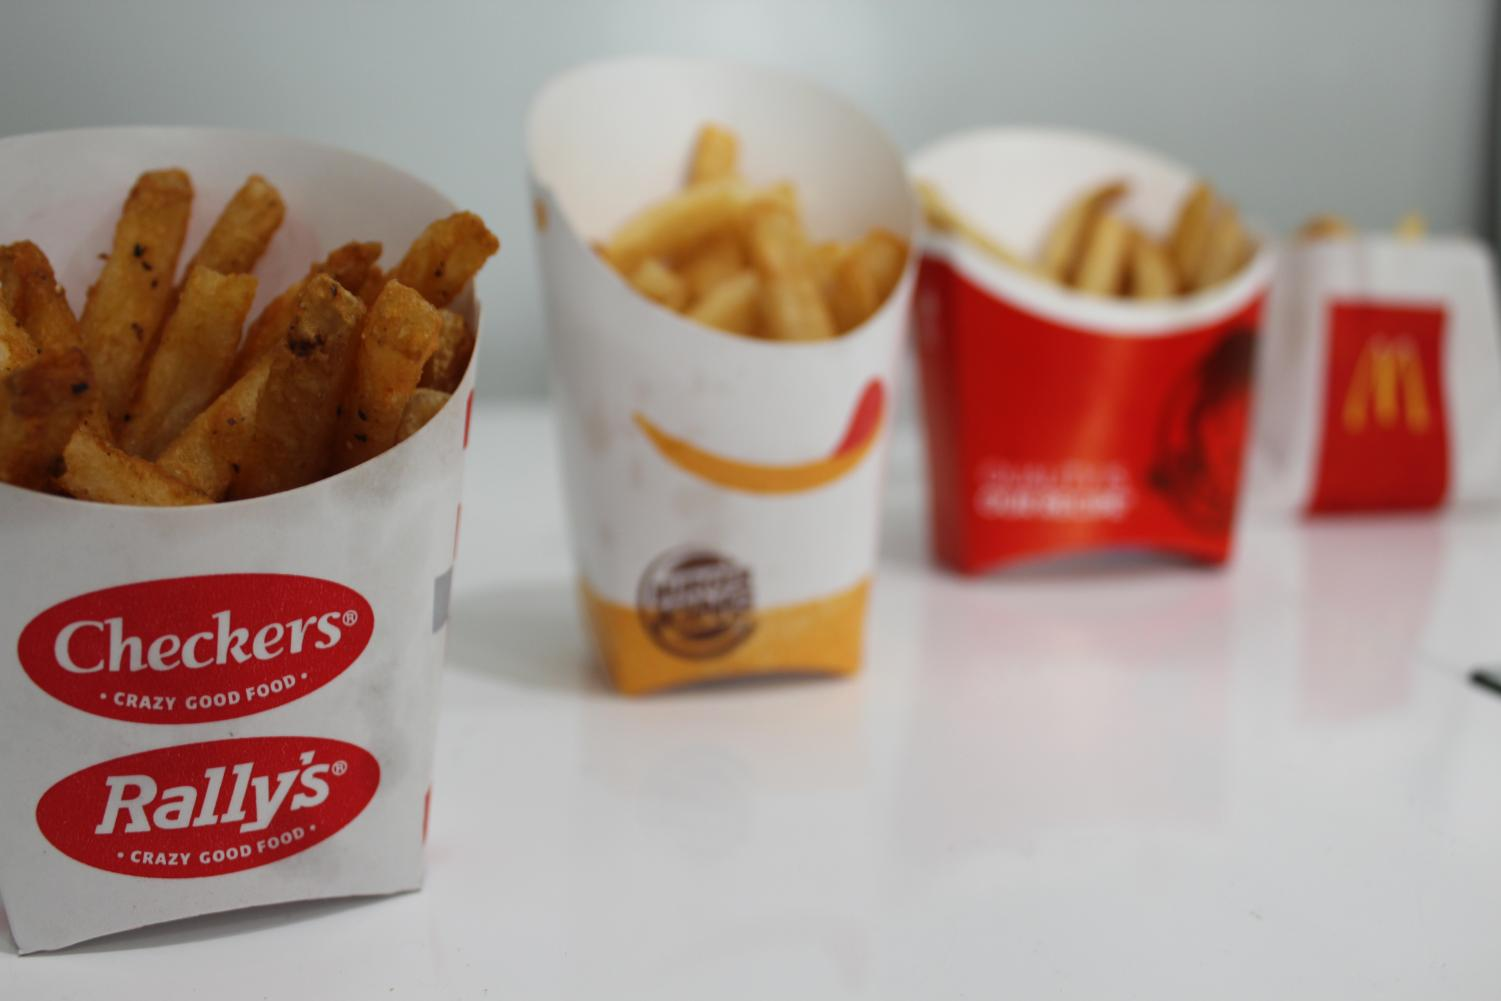 Checkers are the best fries in the fast food industry.